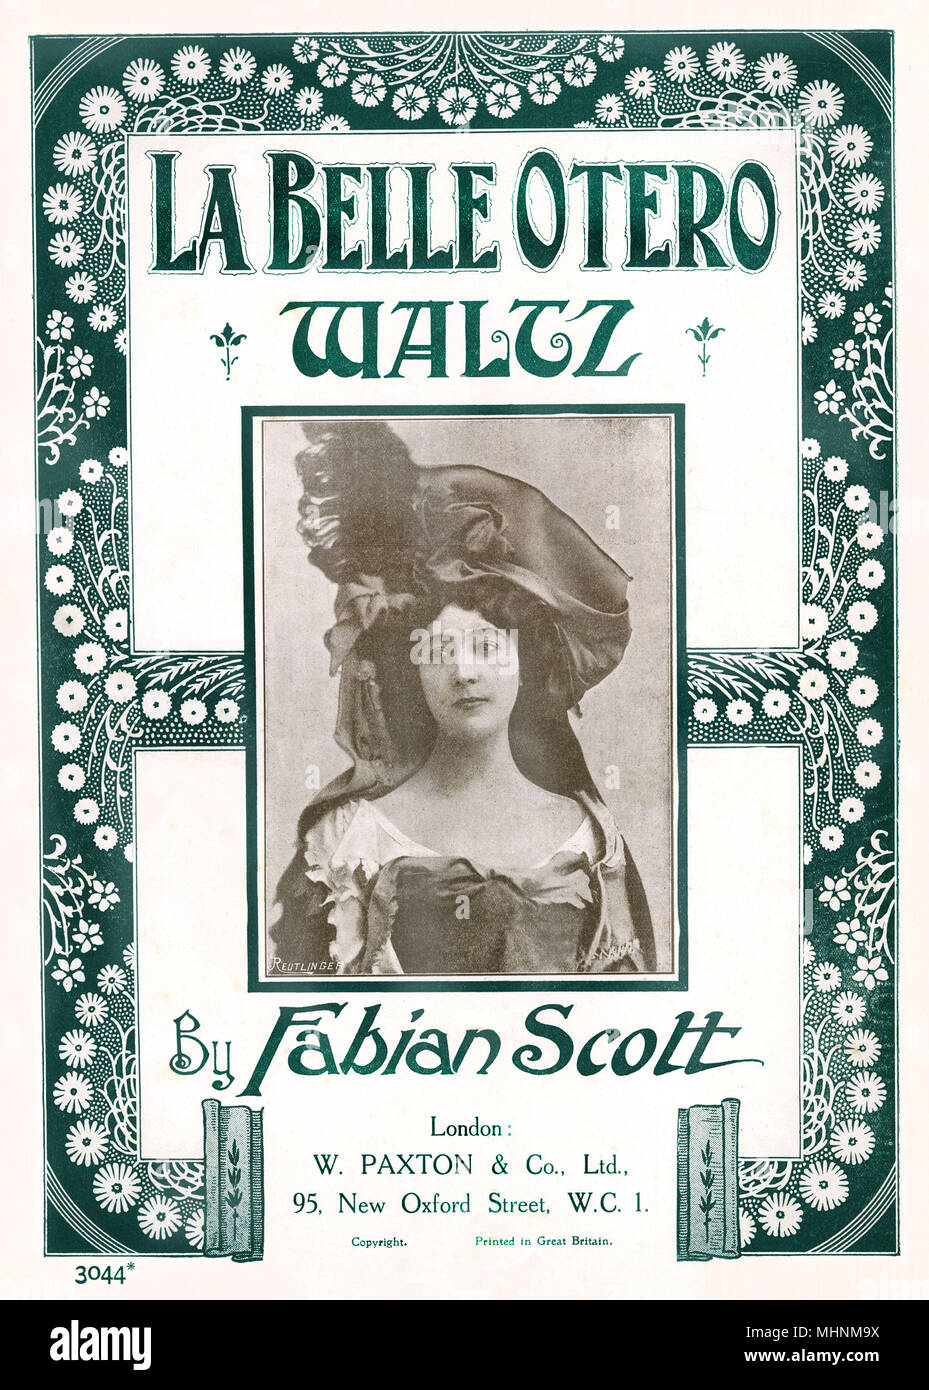 'La Belle Otero' by Waltz - Music Sheet Cover by Fabian Scott starring La Belle Otero. An illustration of a frame with flowers and a portrait of the singer in the middle.     Date: circa 1900 - Stock Image